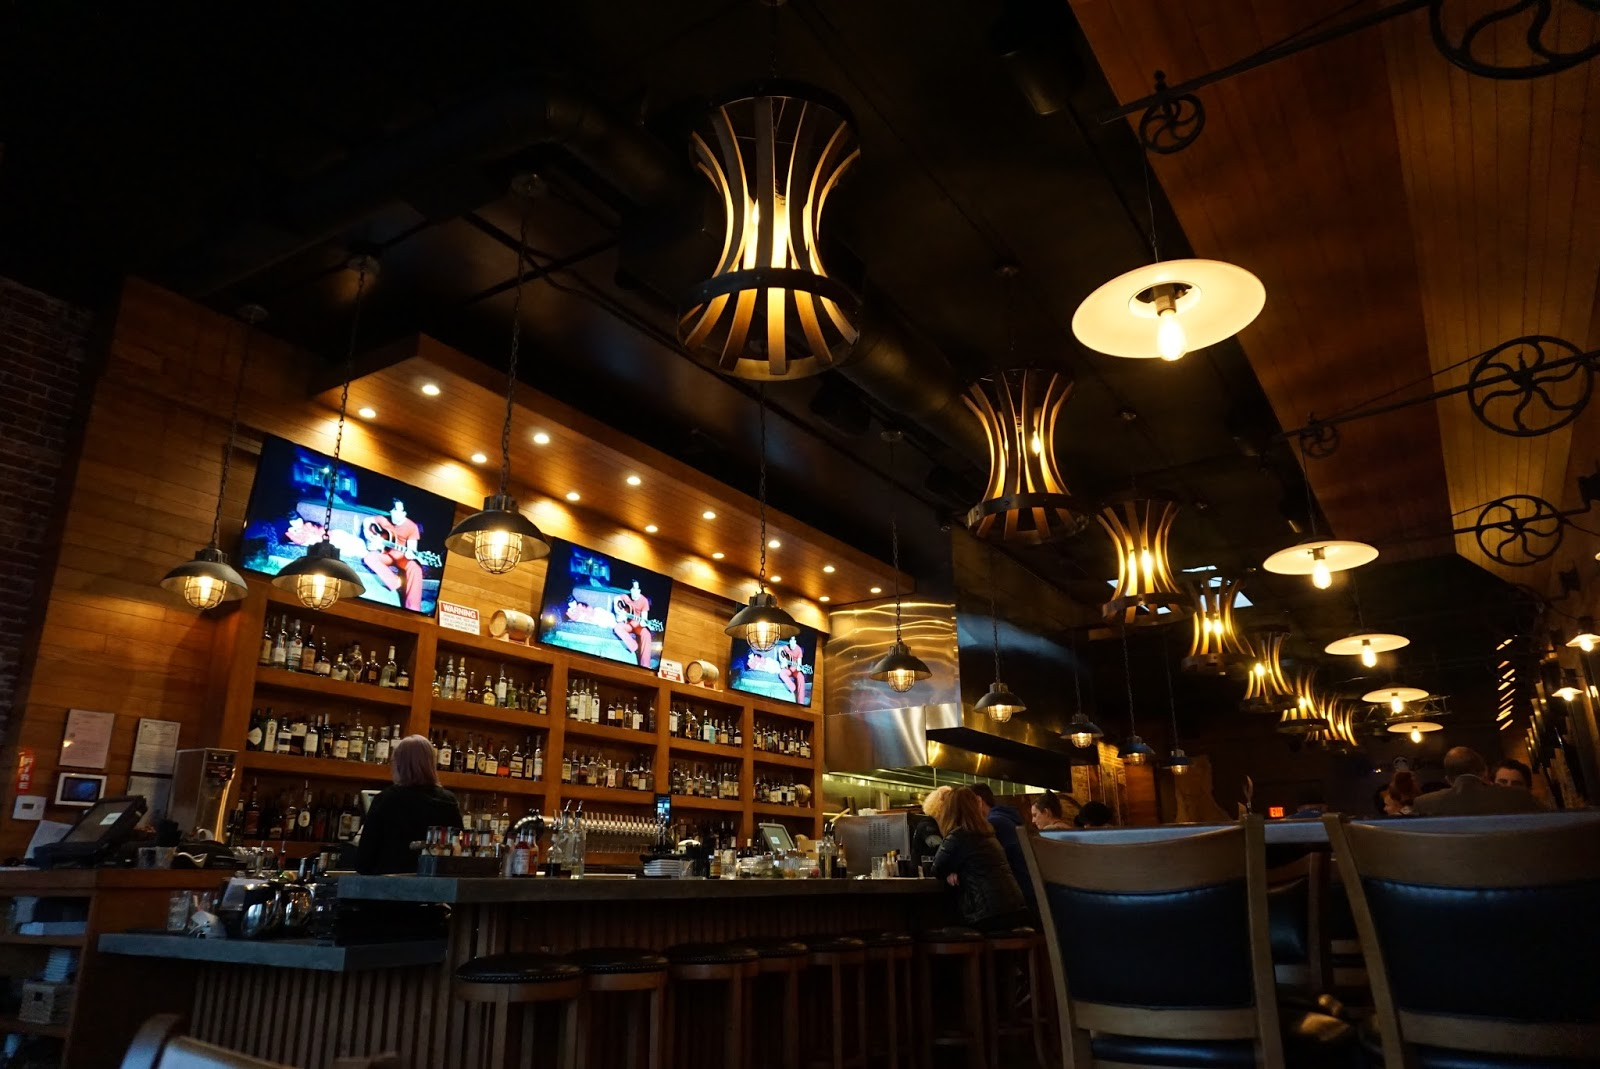 Cheers to Inventive Pub Dining @ The Public House by EBC - Fullerton